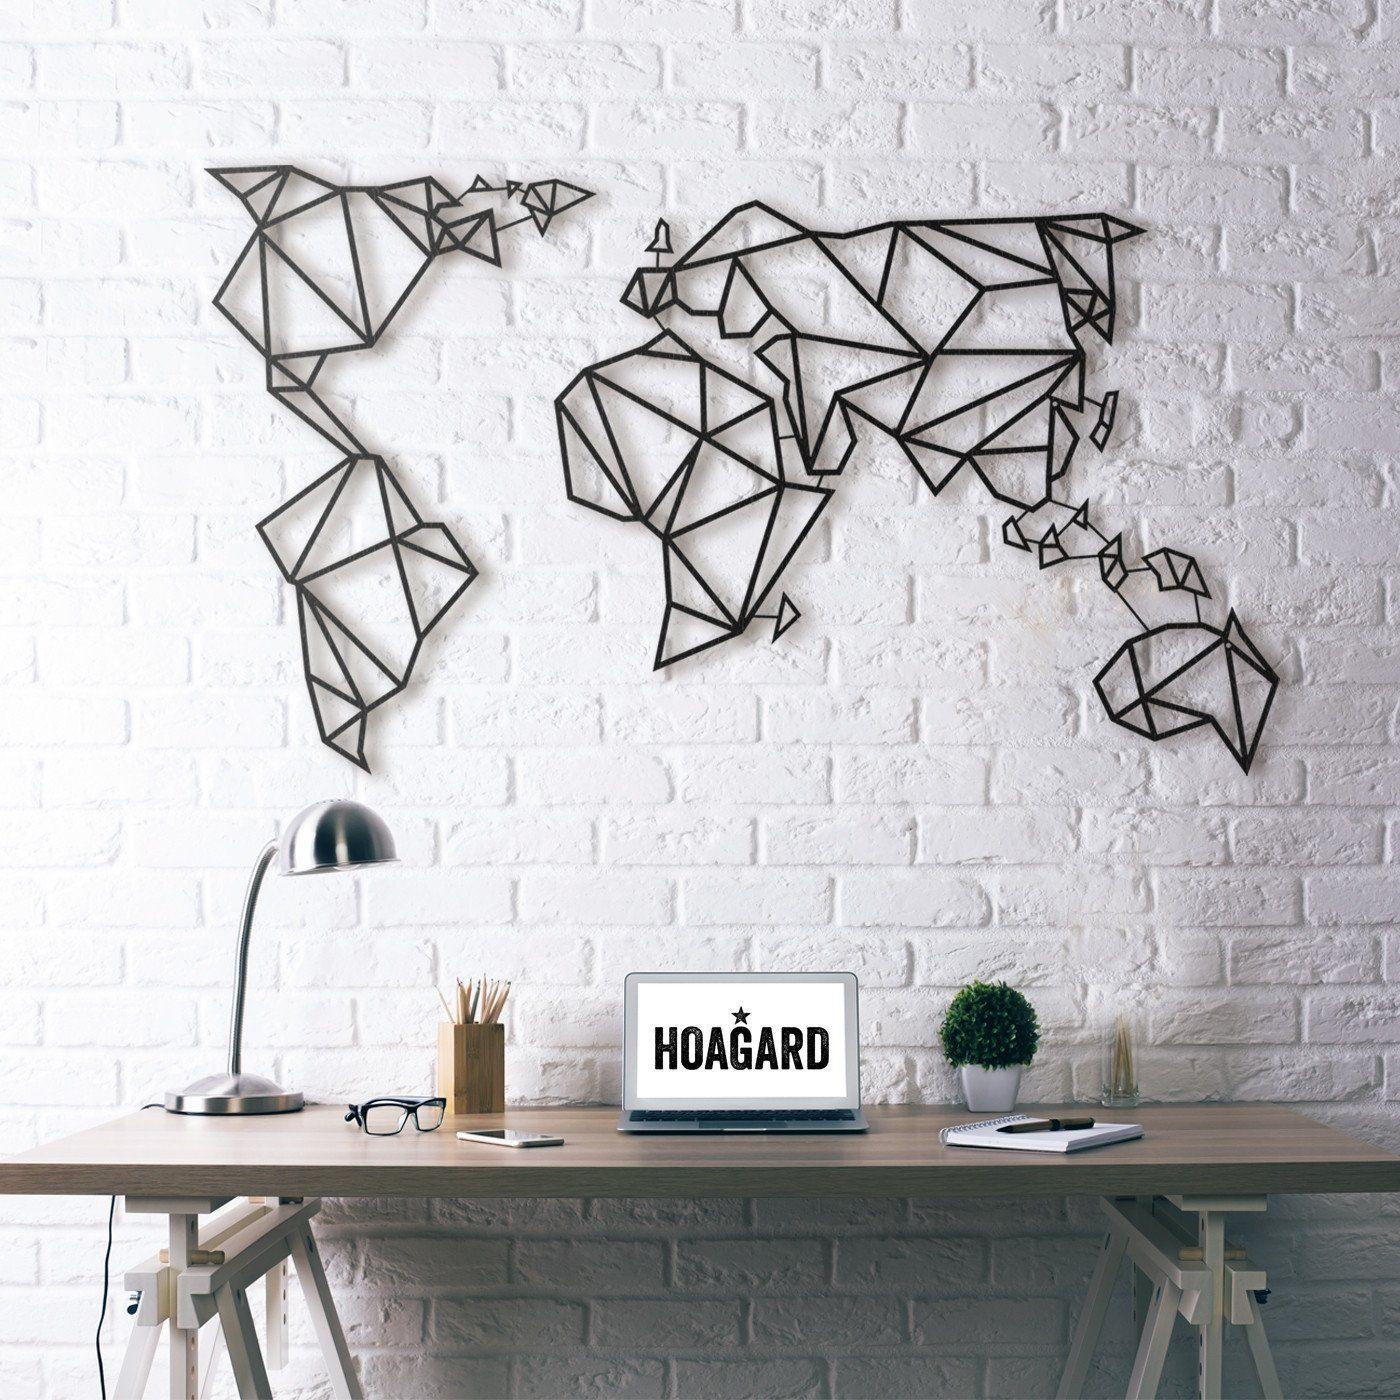 hogard wall art world map the castle pinterest deco murale murale et idee deco. Black Bedroom Furniture Sets. Home Design Ideas